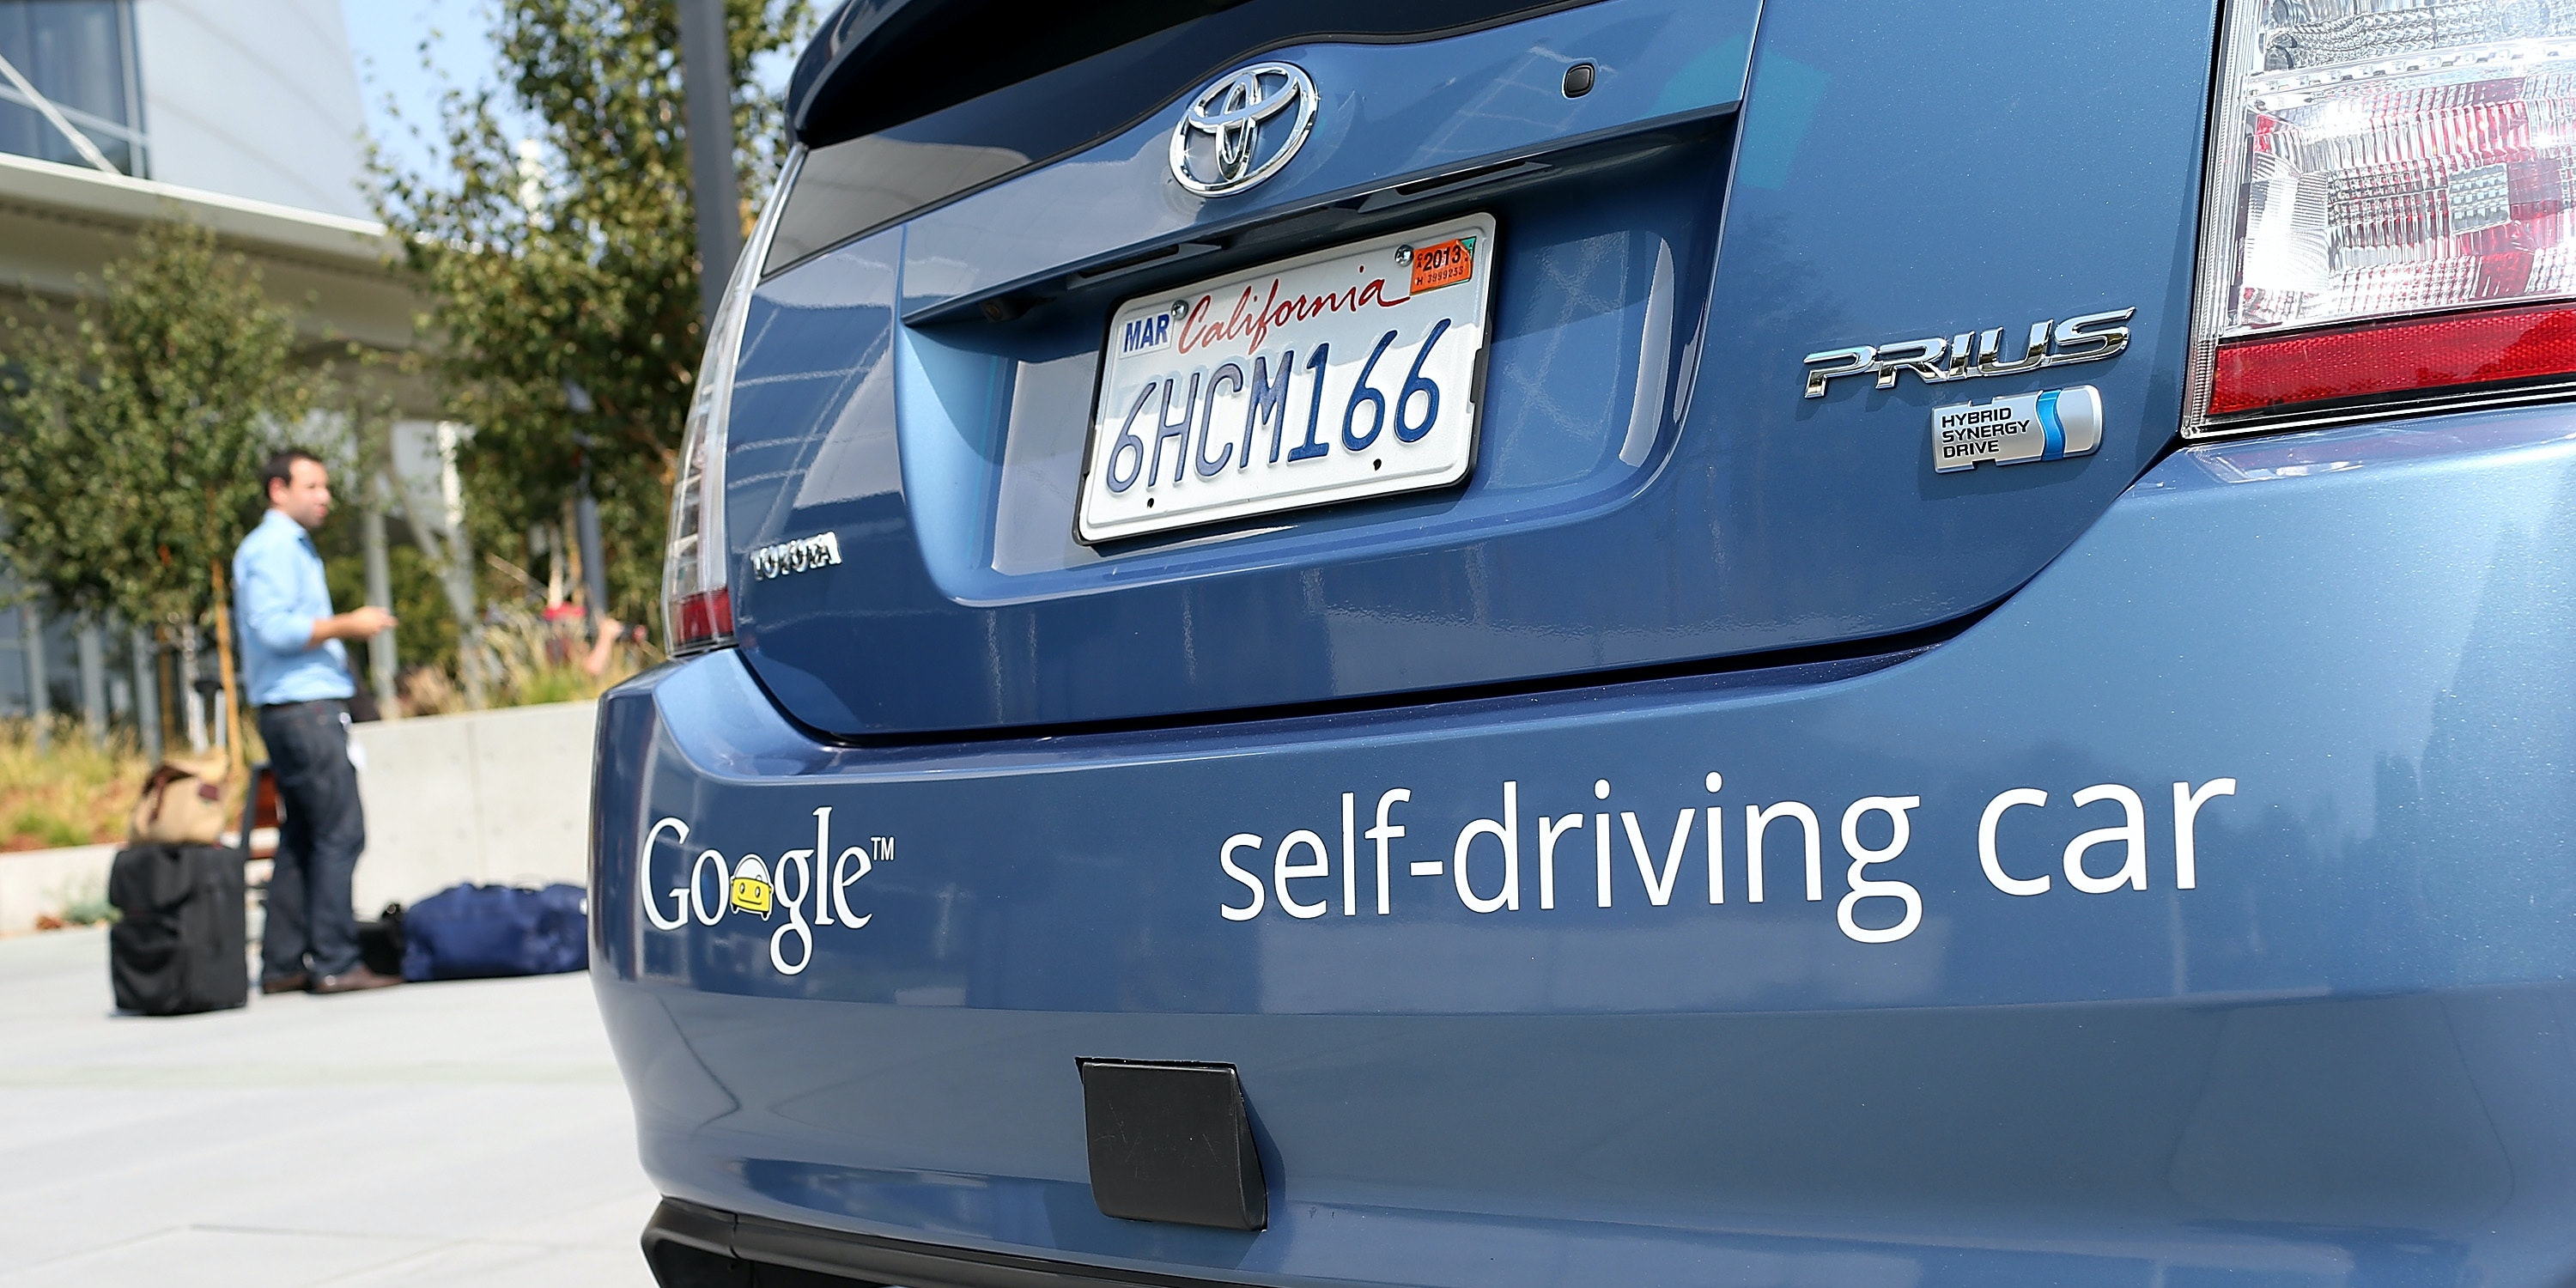 The Future of Driverless Cars: Where We're Going, We'll Need More Roads